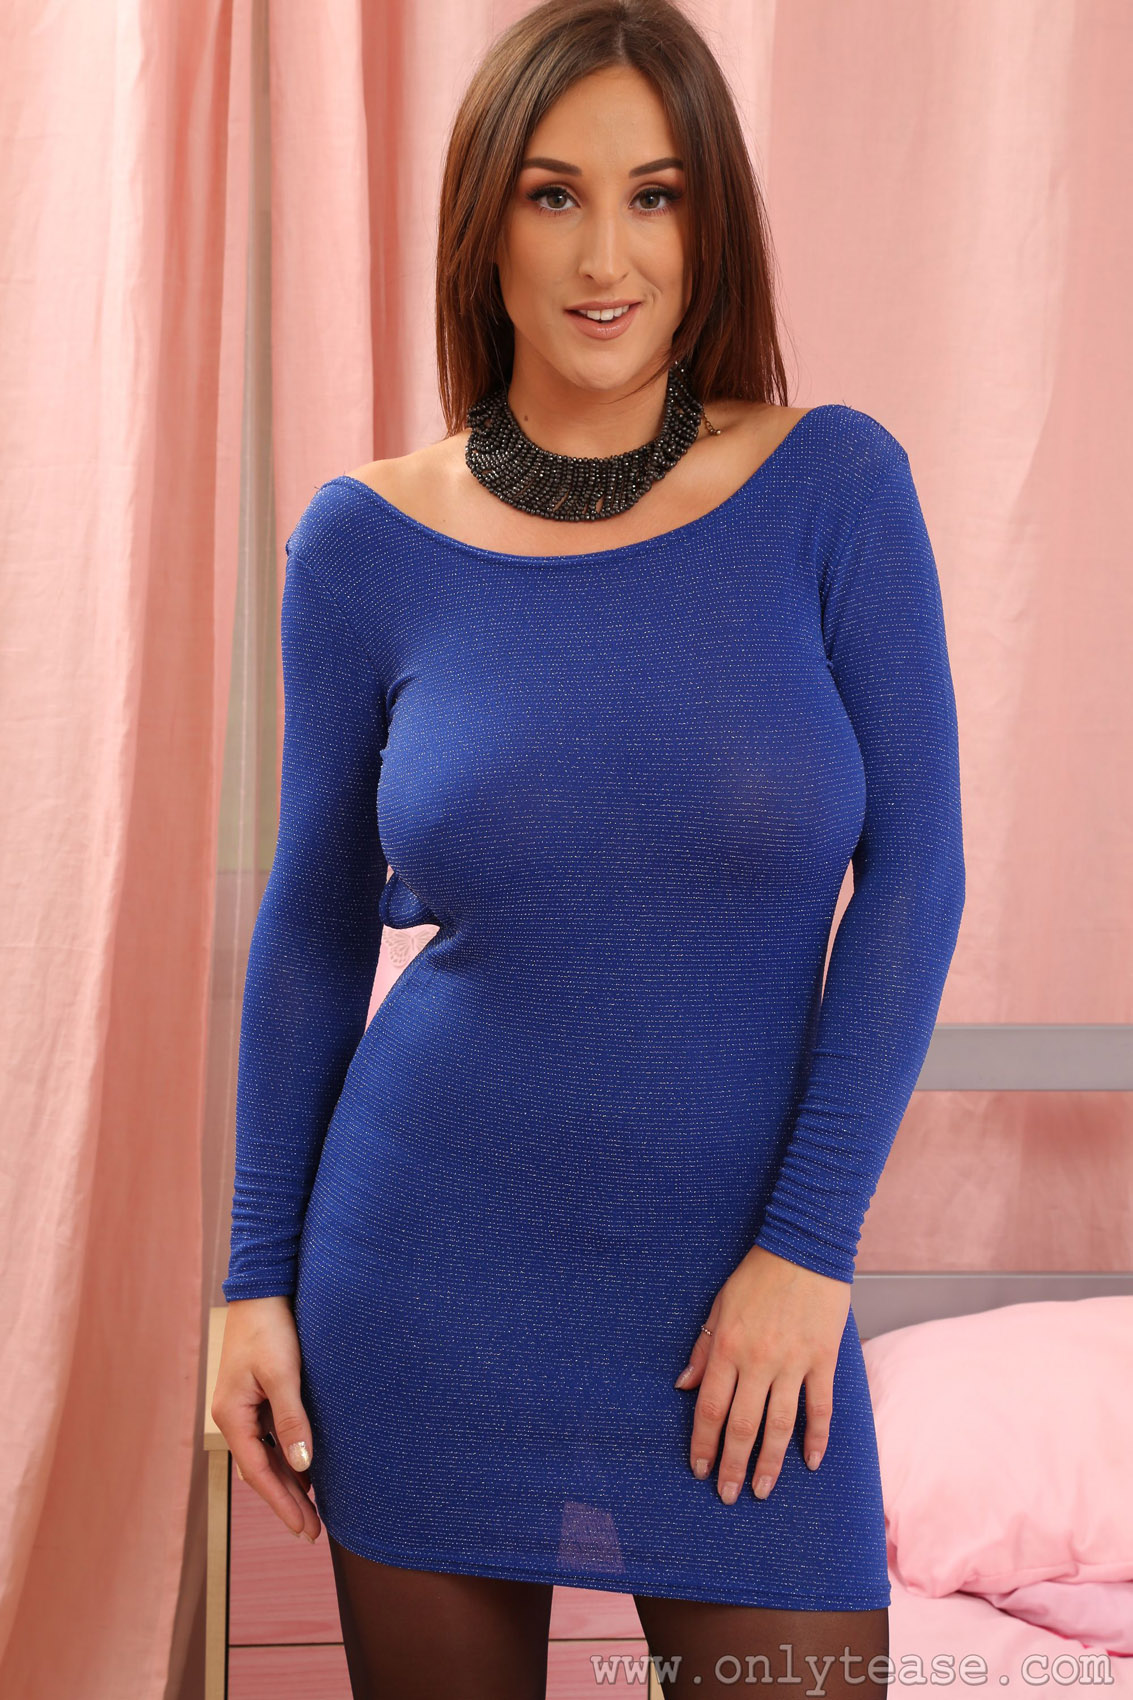 Busty blonde in blue dress